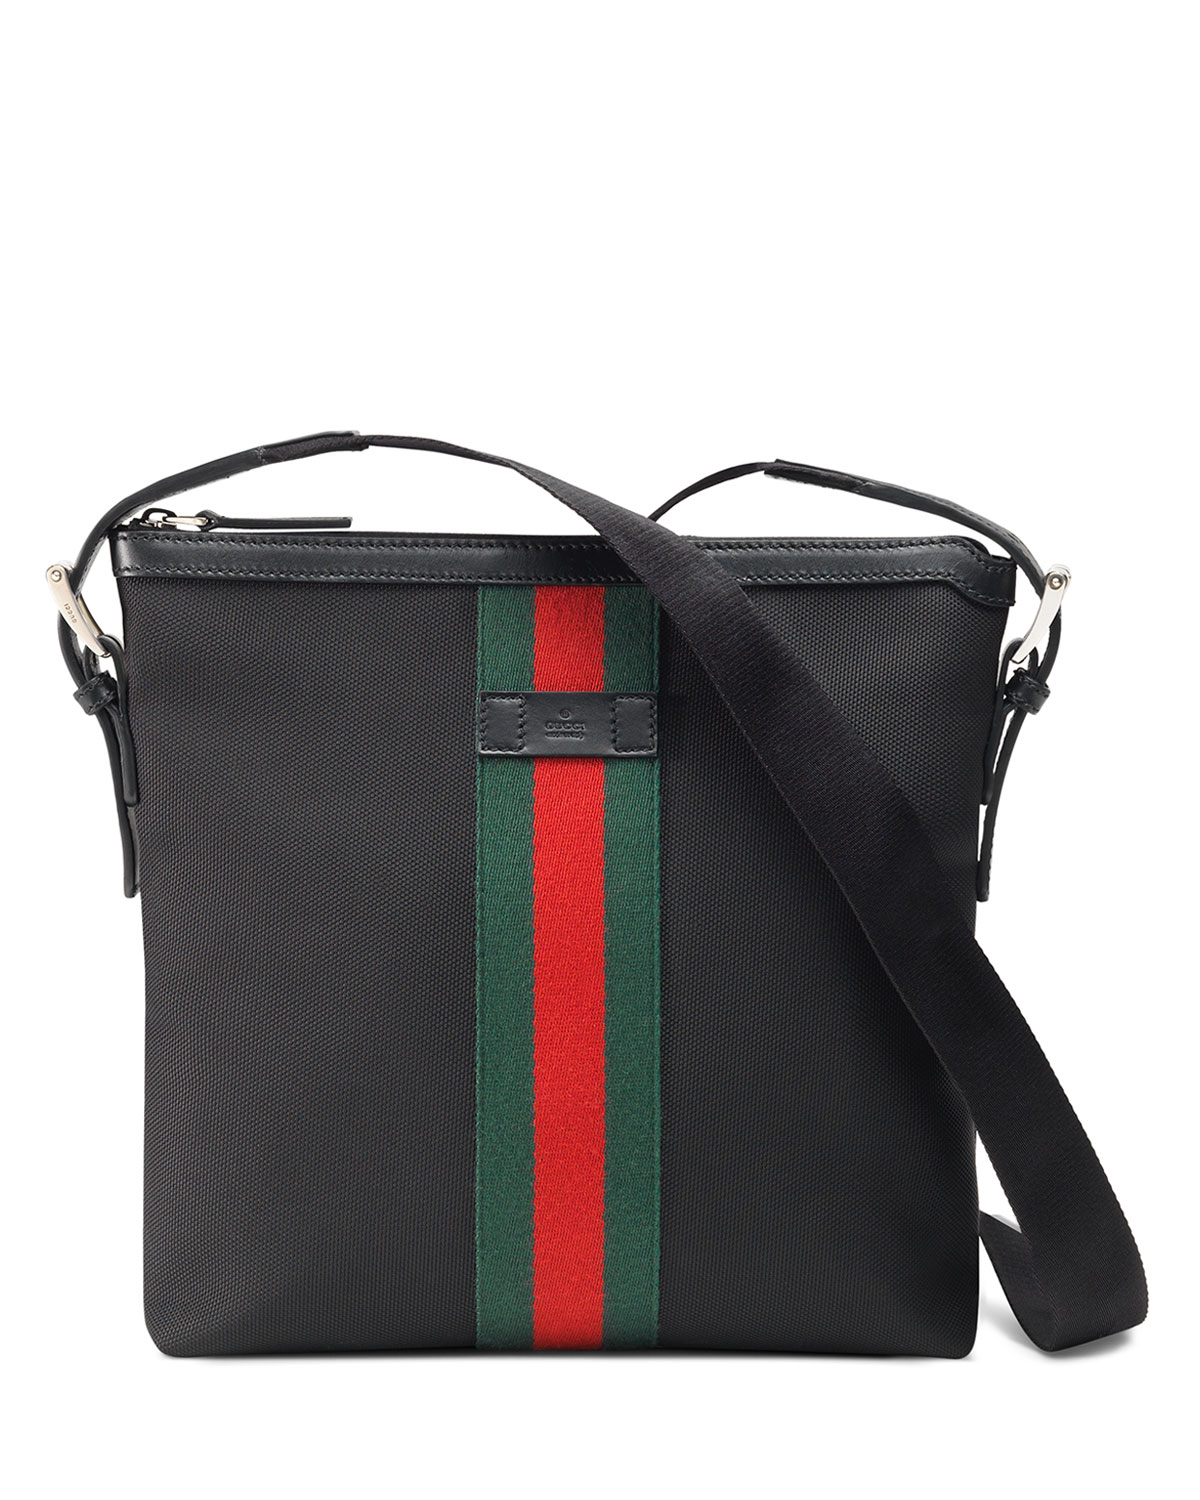 52aad5014b83 Gucci Men's Web GG Supreme Messenger Bag | Neiman Marcus